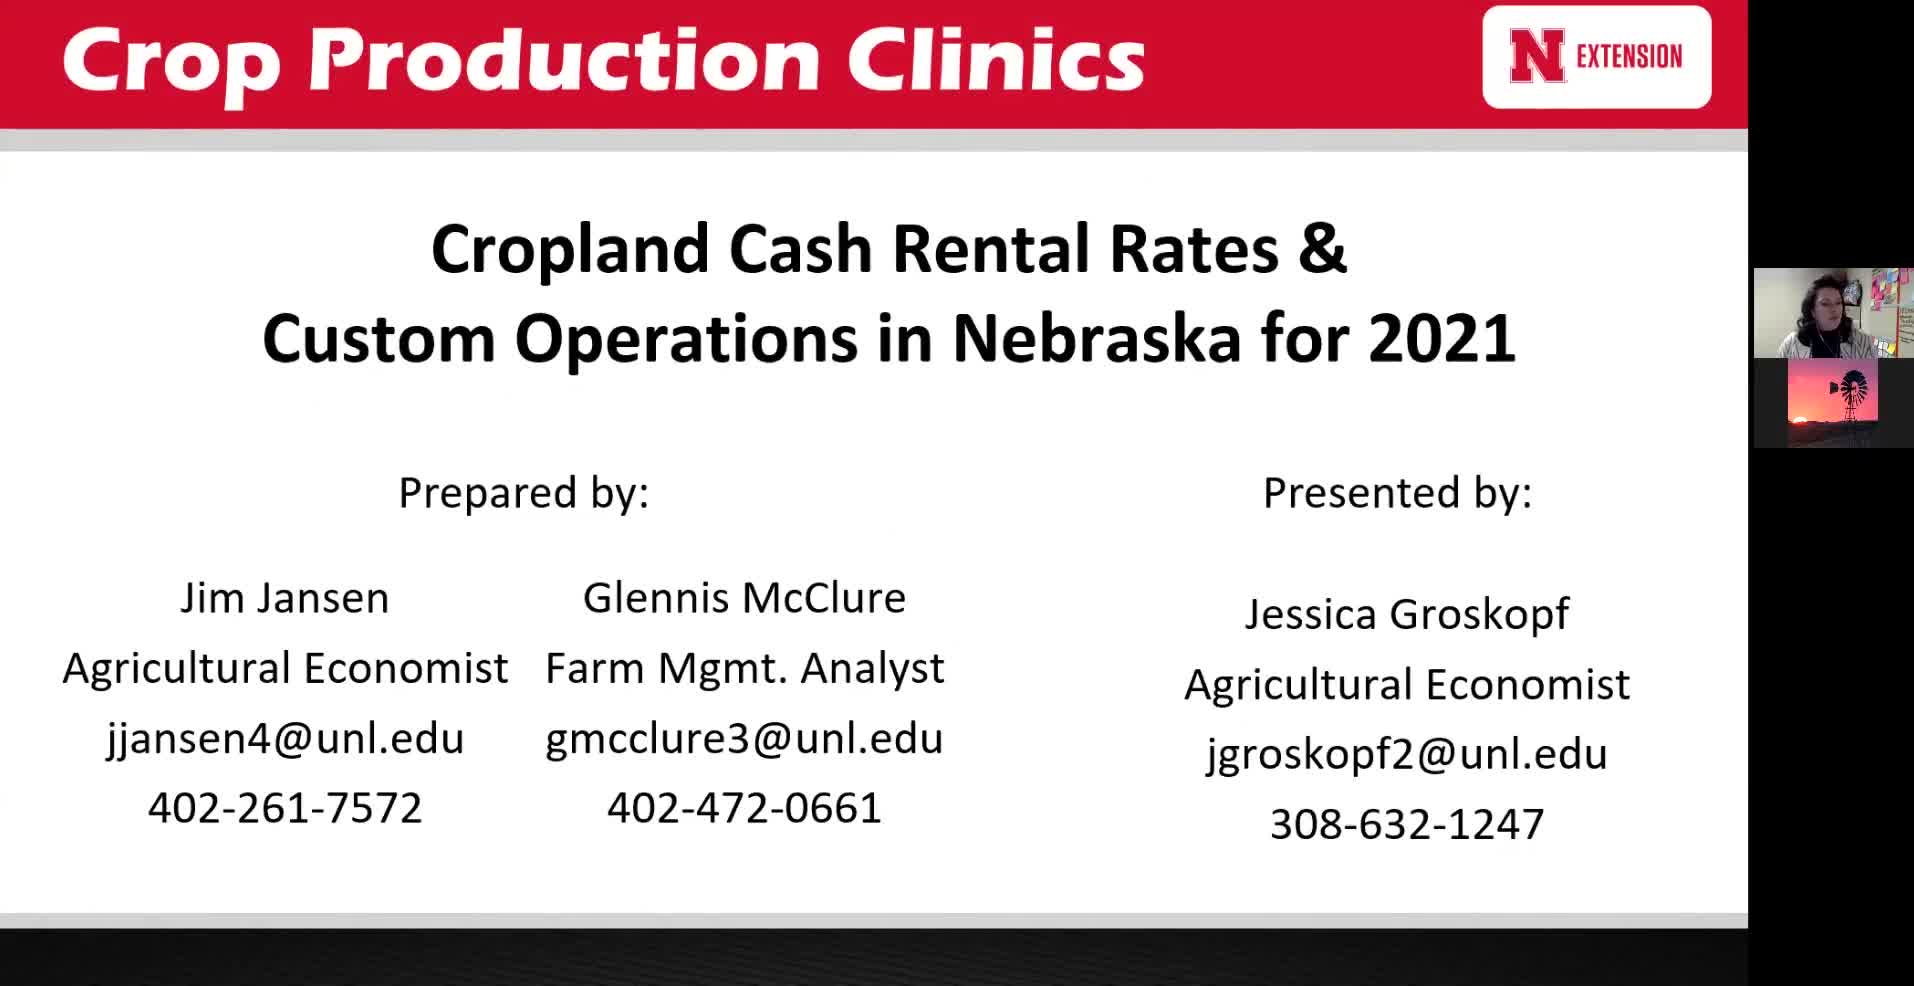 Cropland Cash Rental Rates and Custom Operations in Nebraska for 2021